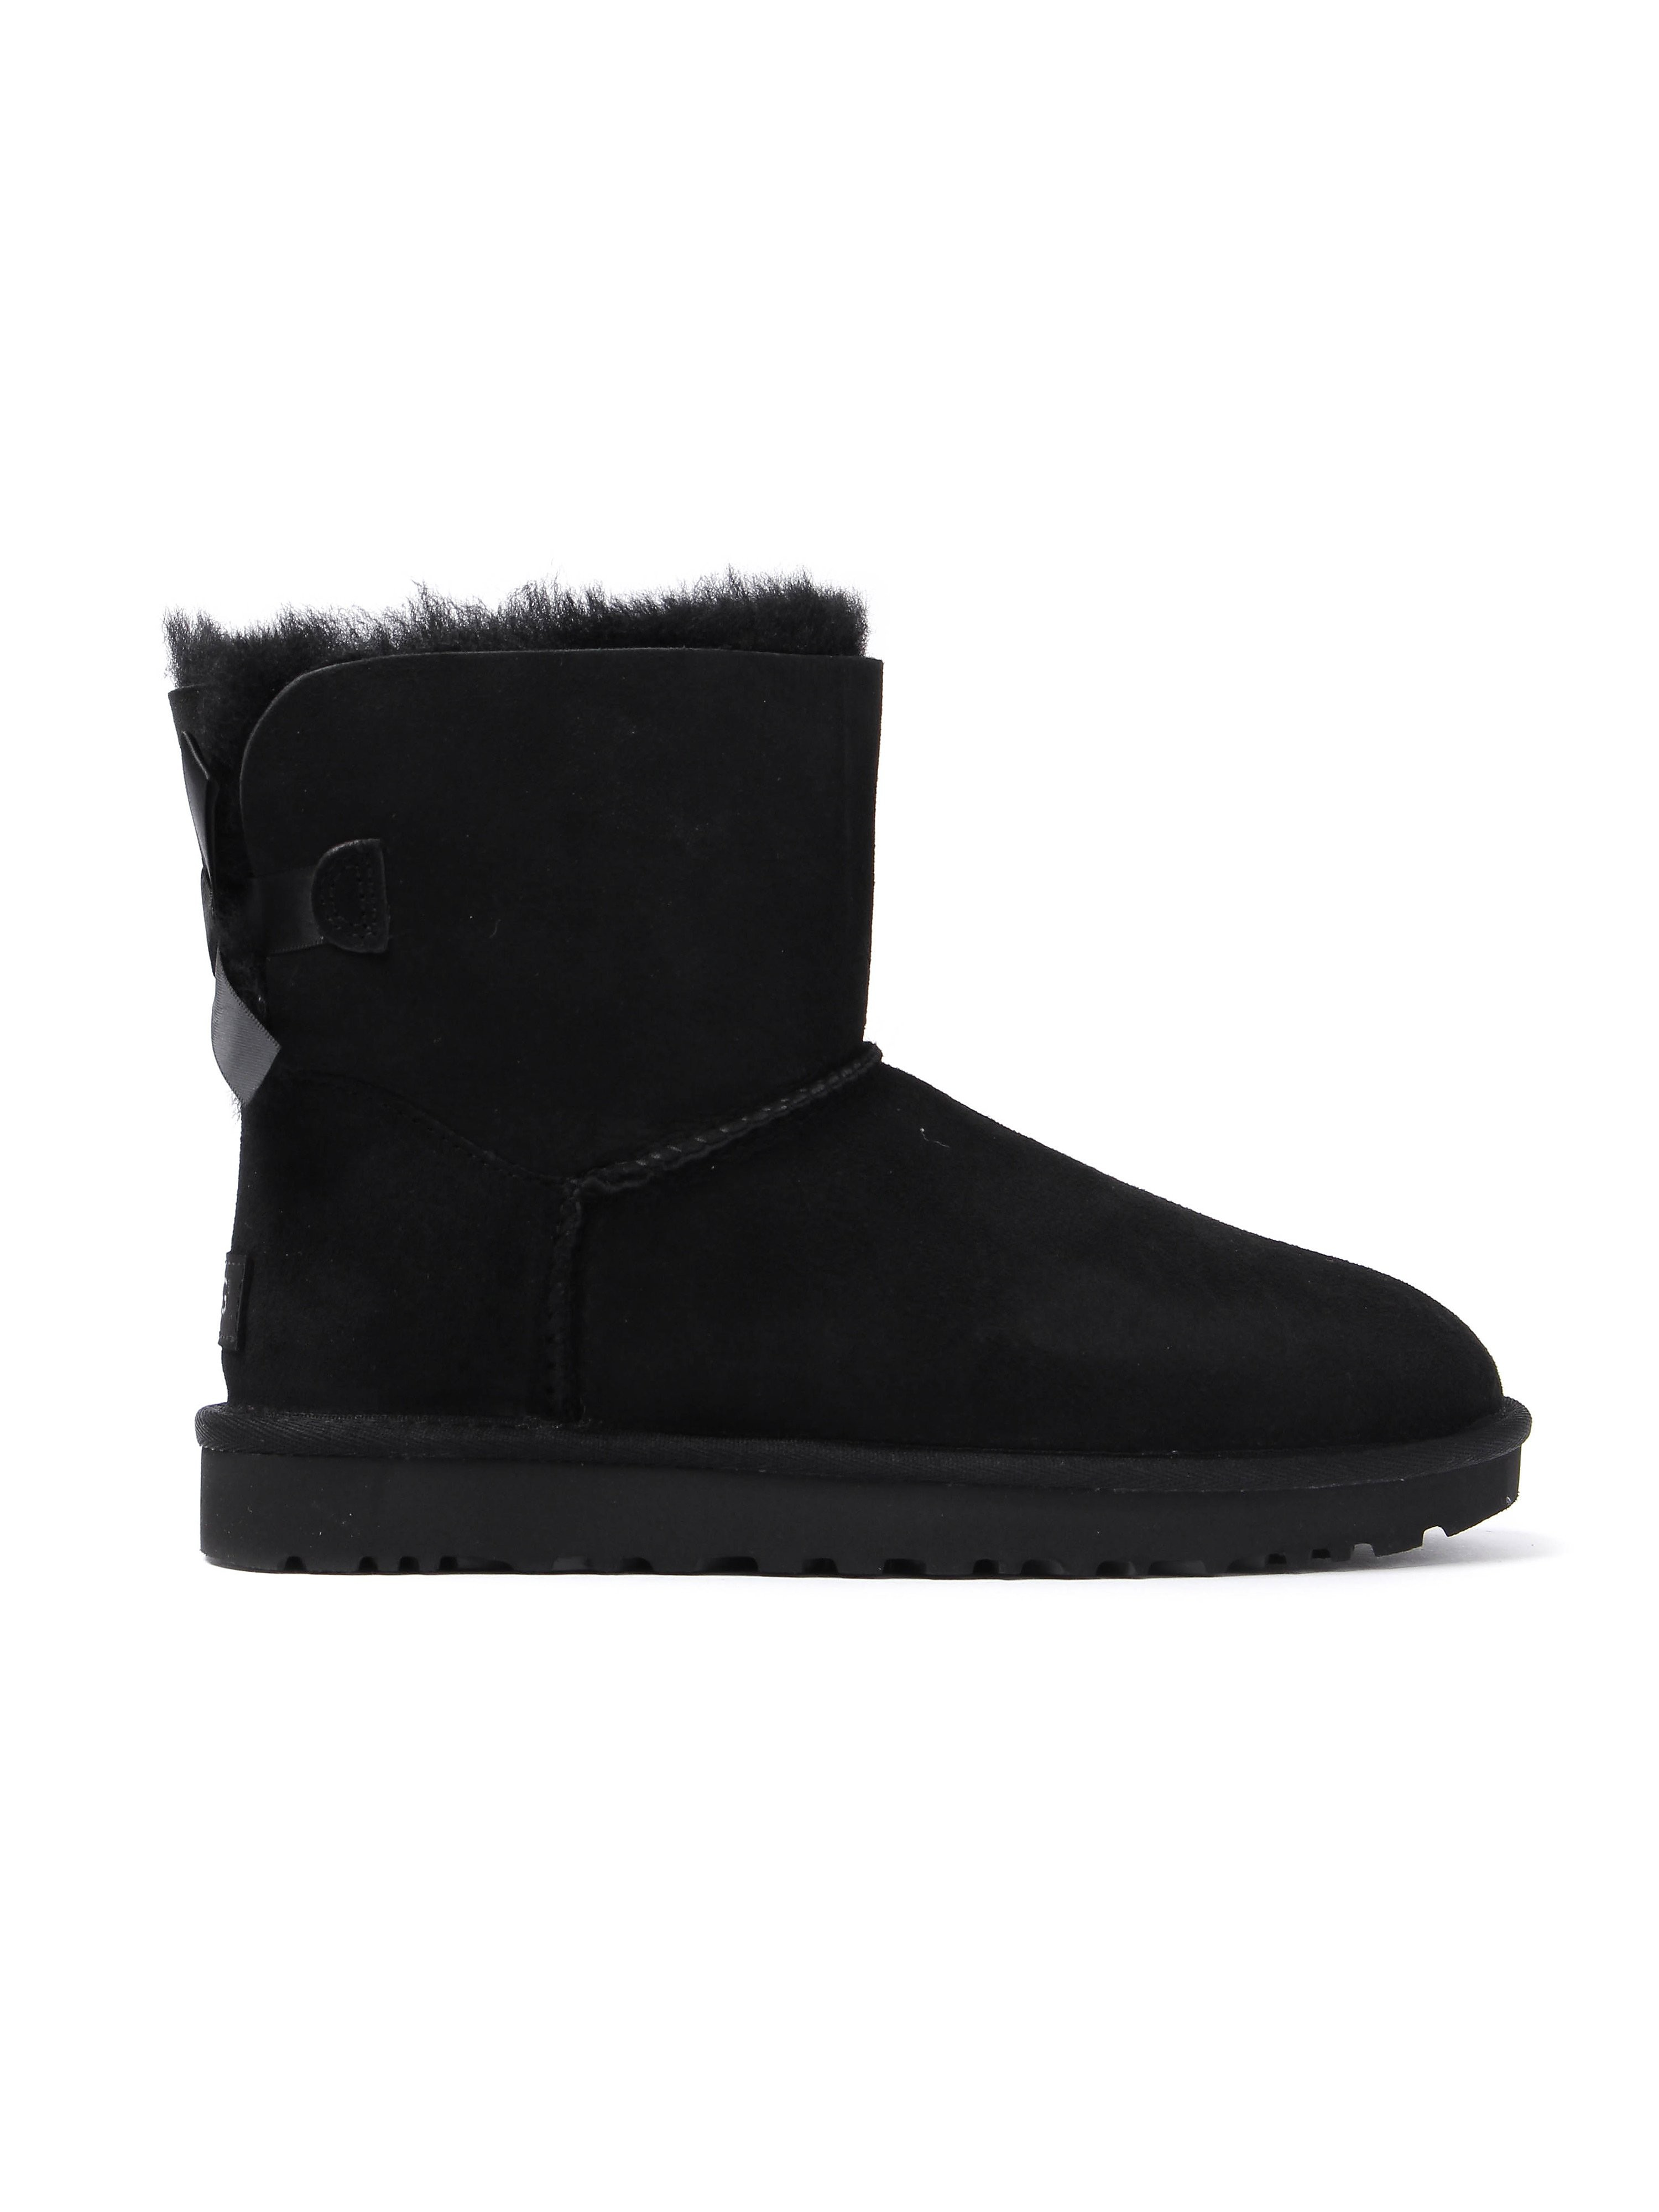 Ugg Women's Bailey Bow II Sheepskin Boots - Black